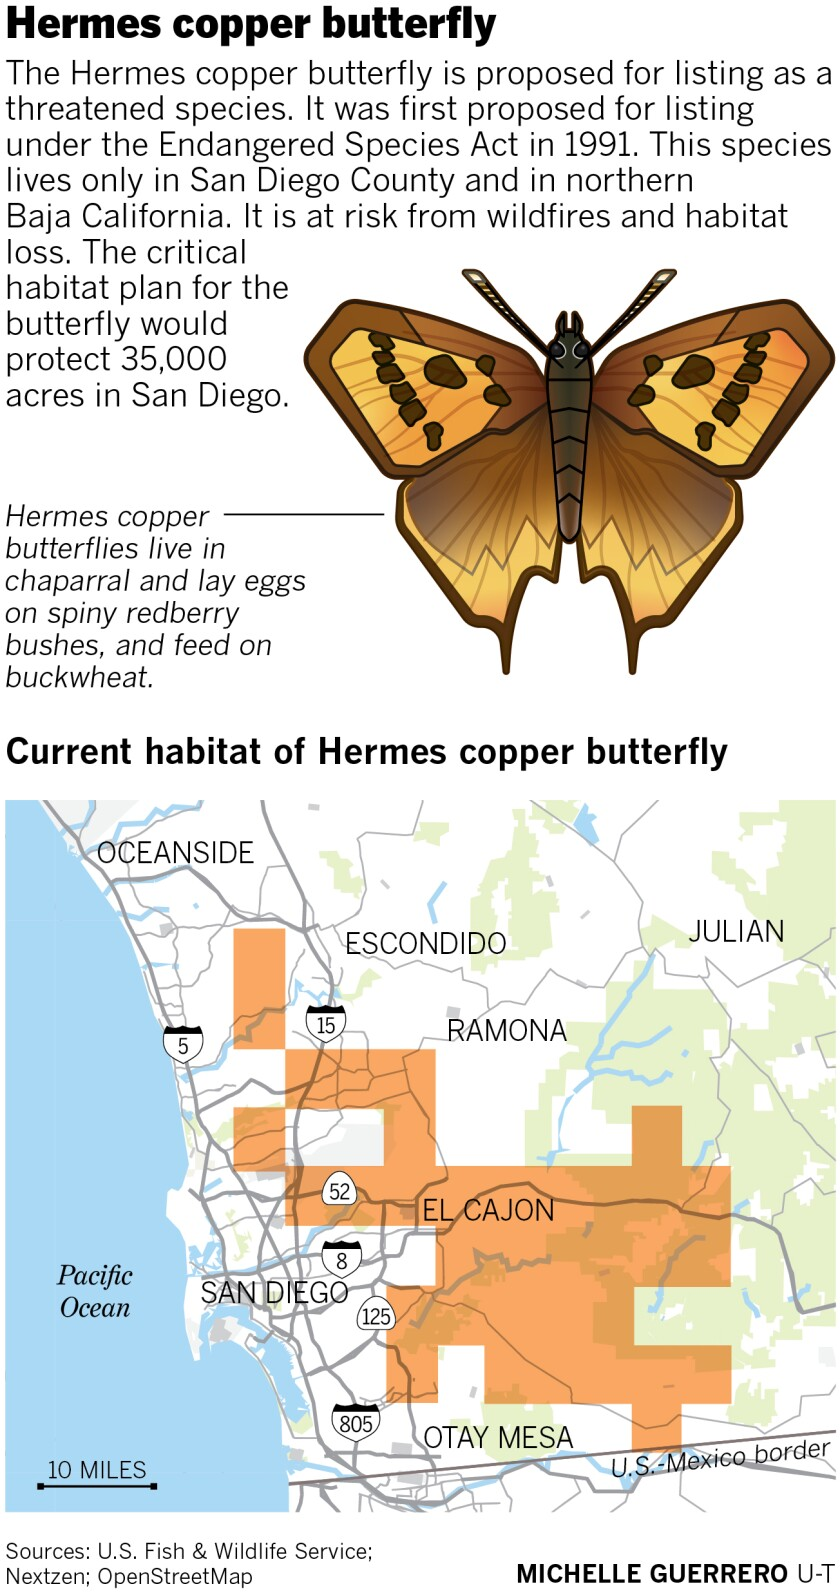 Map of current habitat of Hermes copper butterly